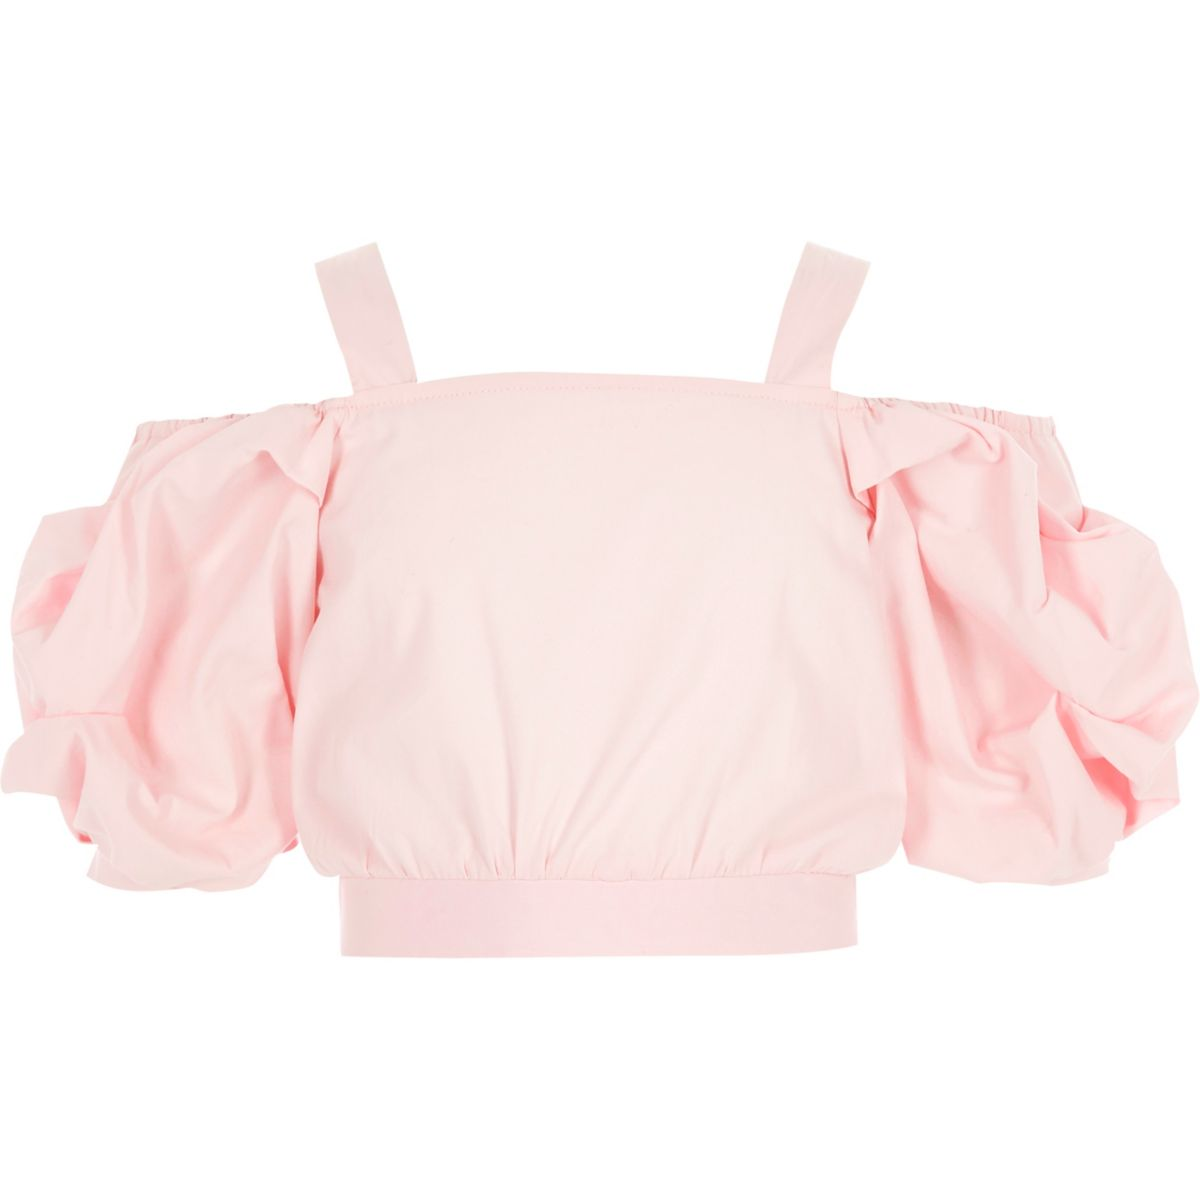 Girls pink cold shoulder crop top